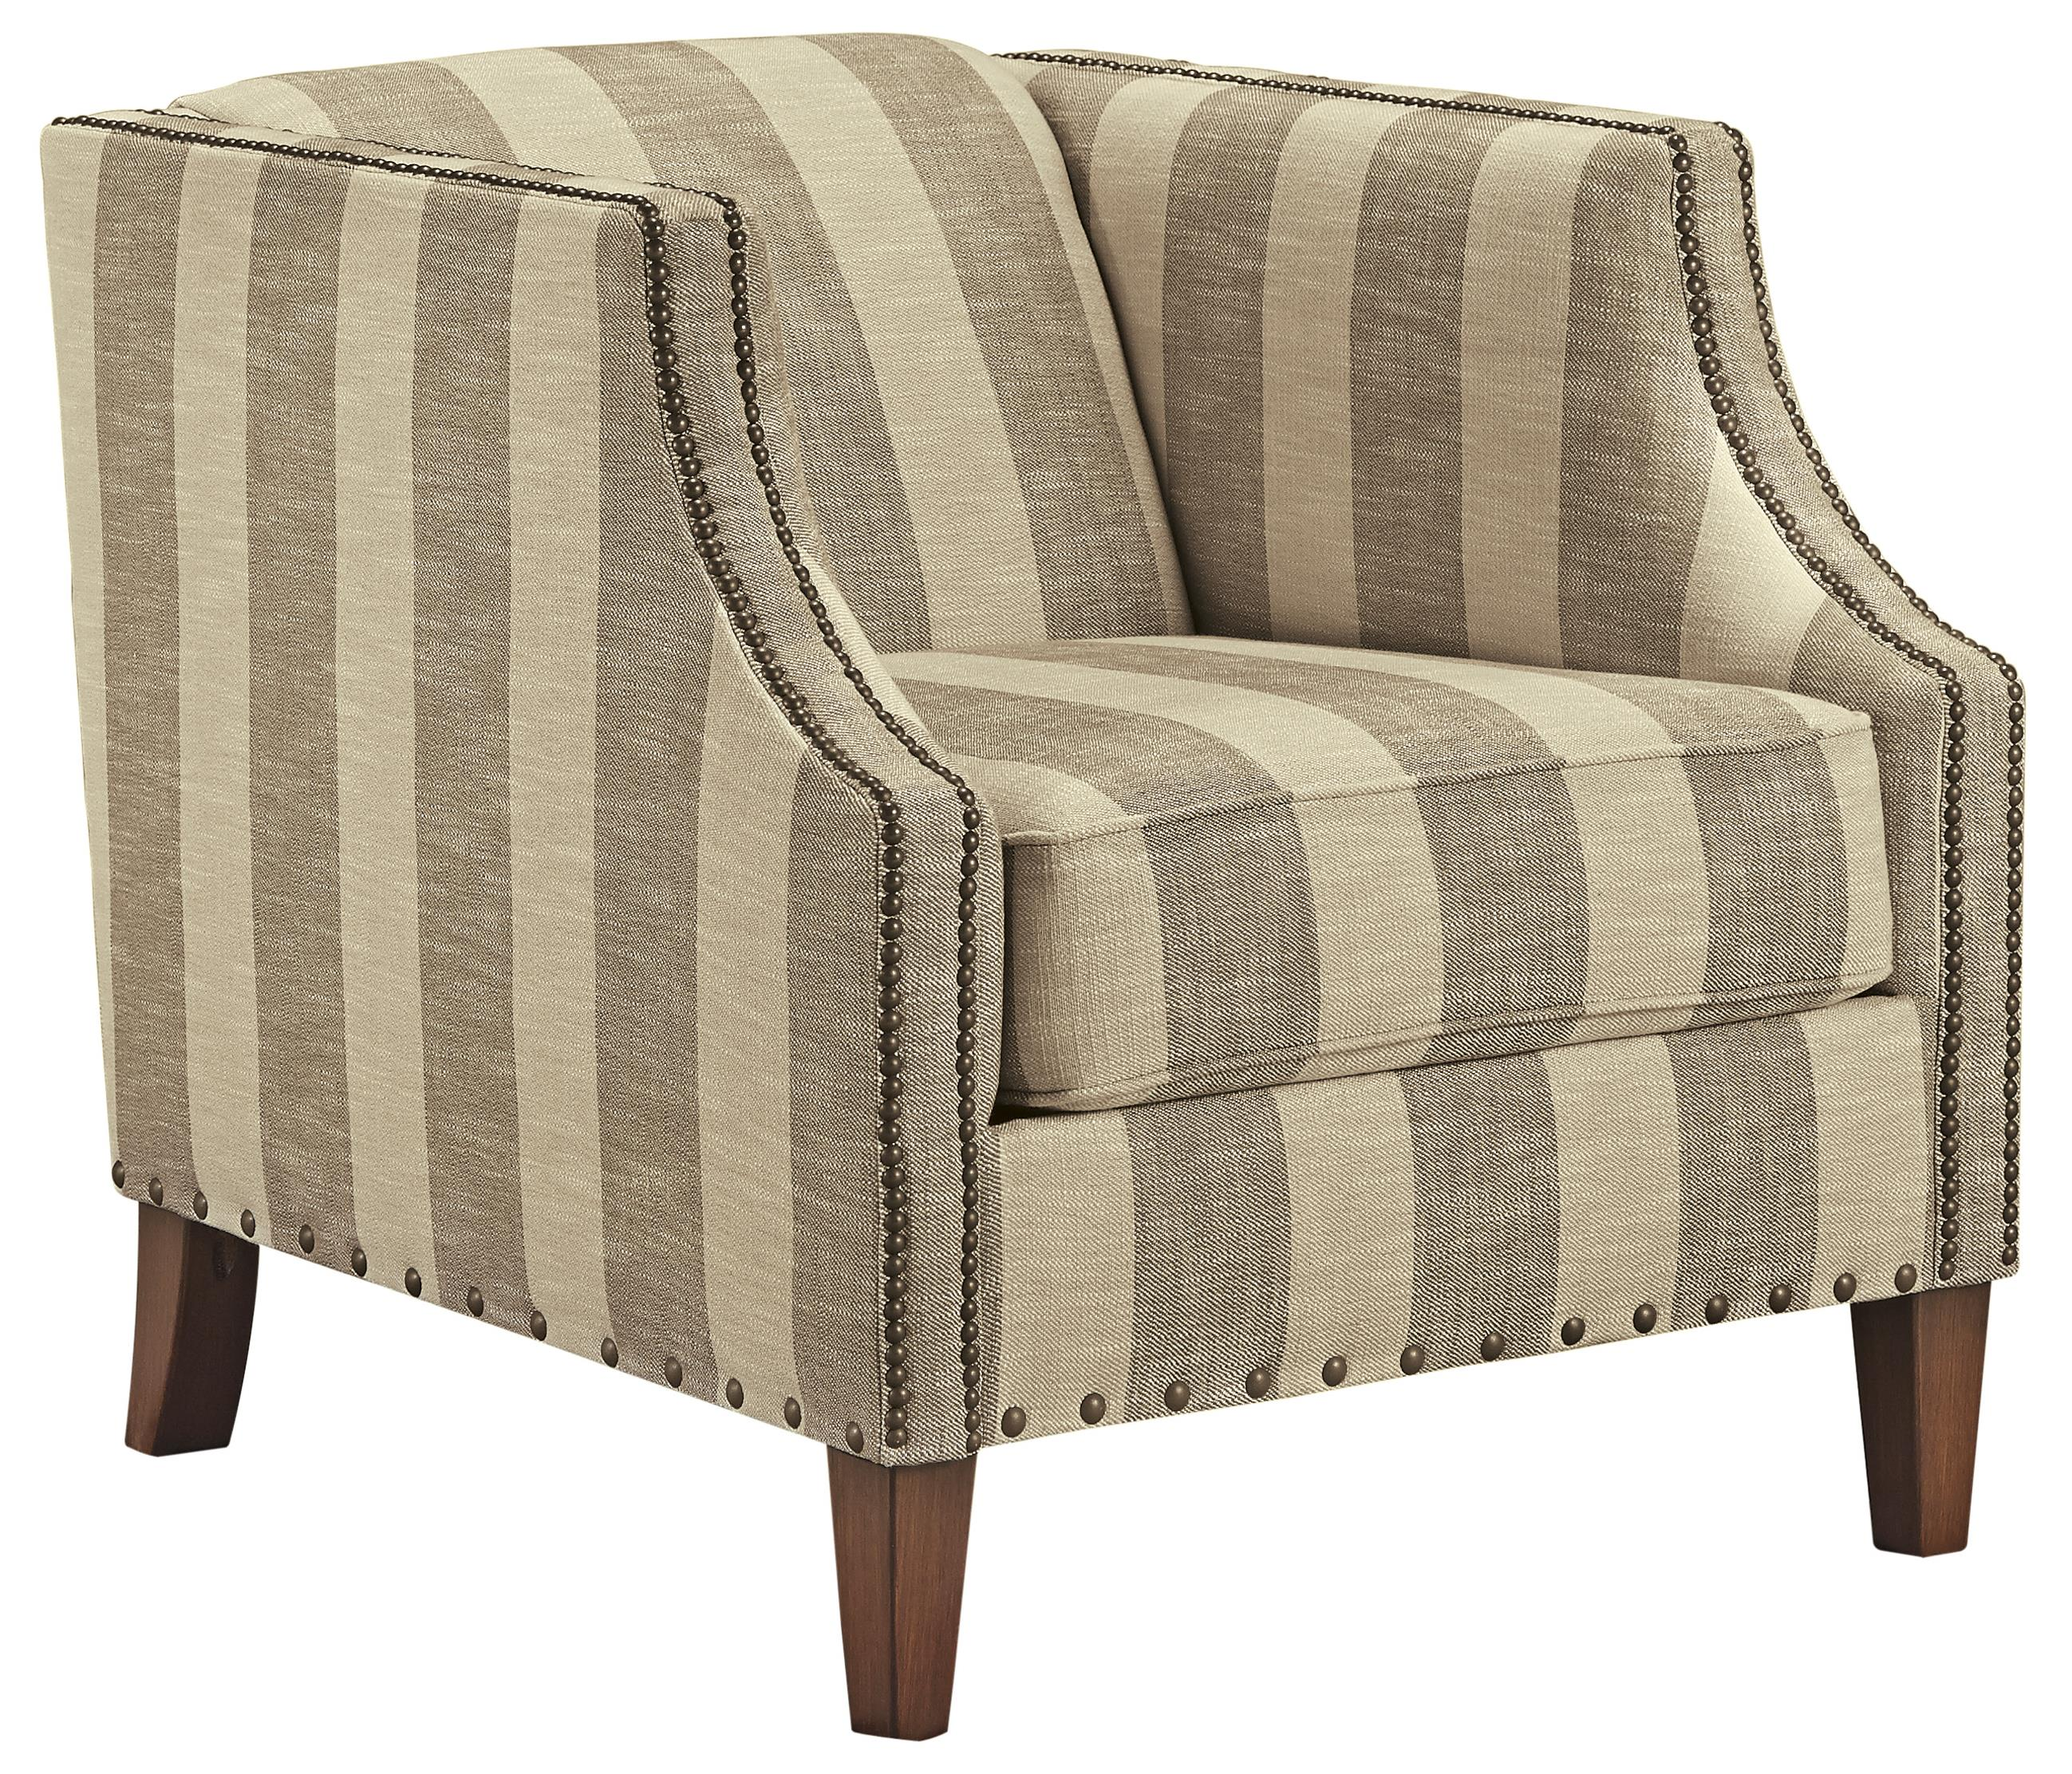 Signature Design by Ashley Berwyn View Accents Accent Chair - Item Number: 898XX22